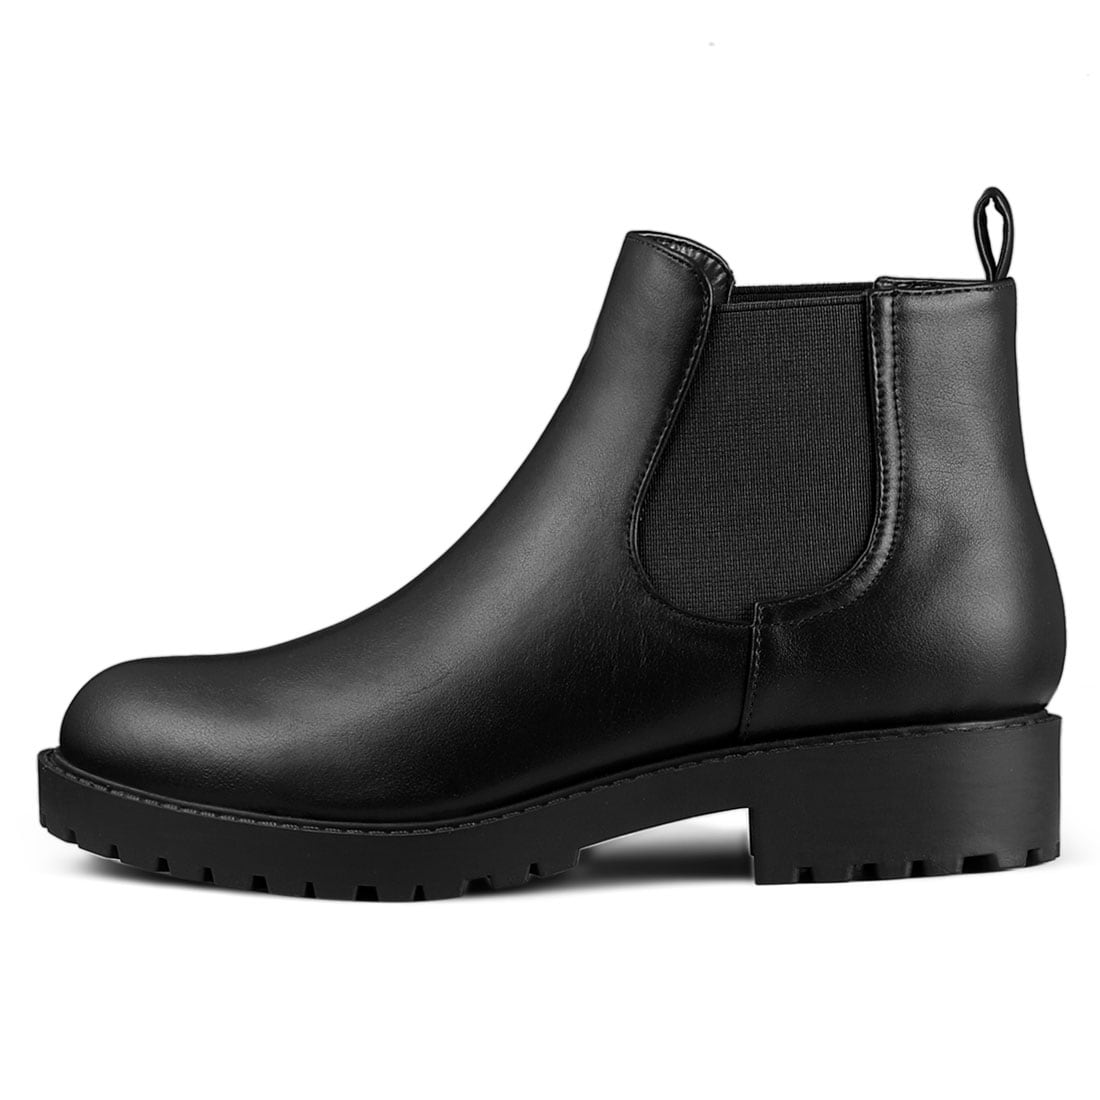 Low Heel Round Toe Chelsea Ankle Boots